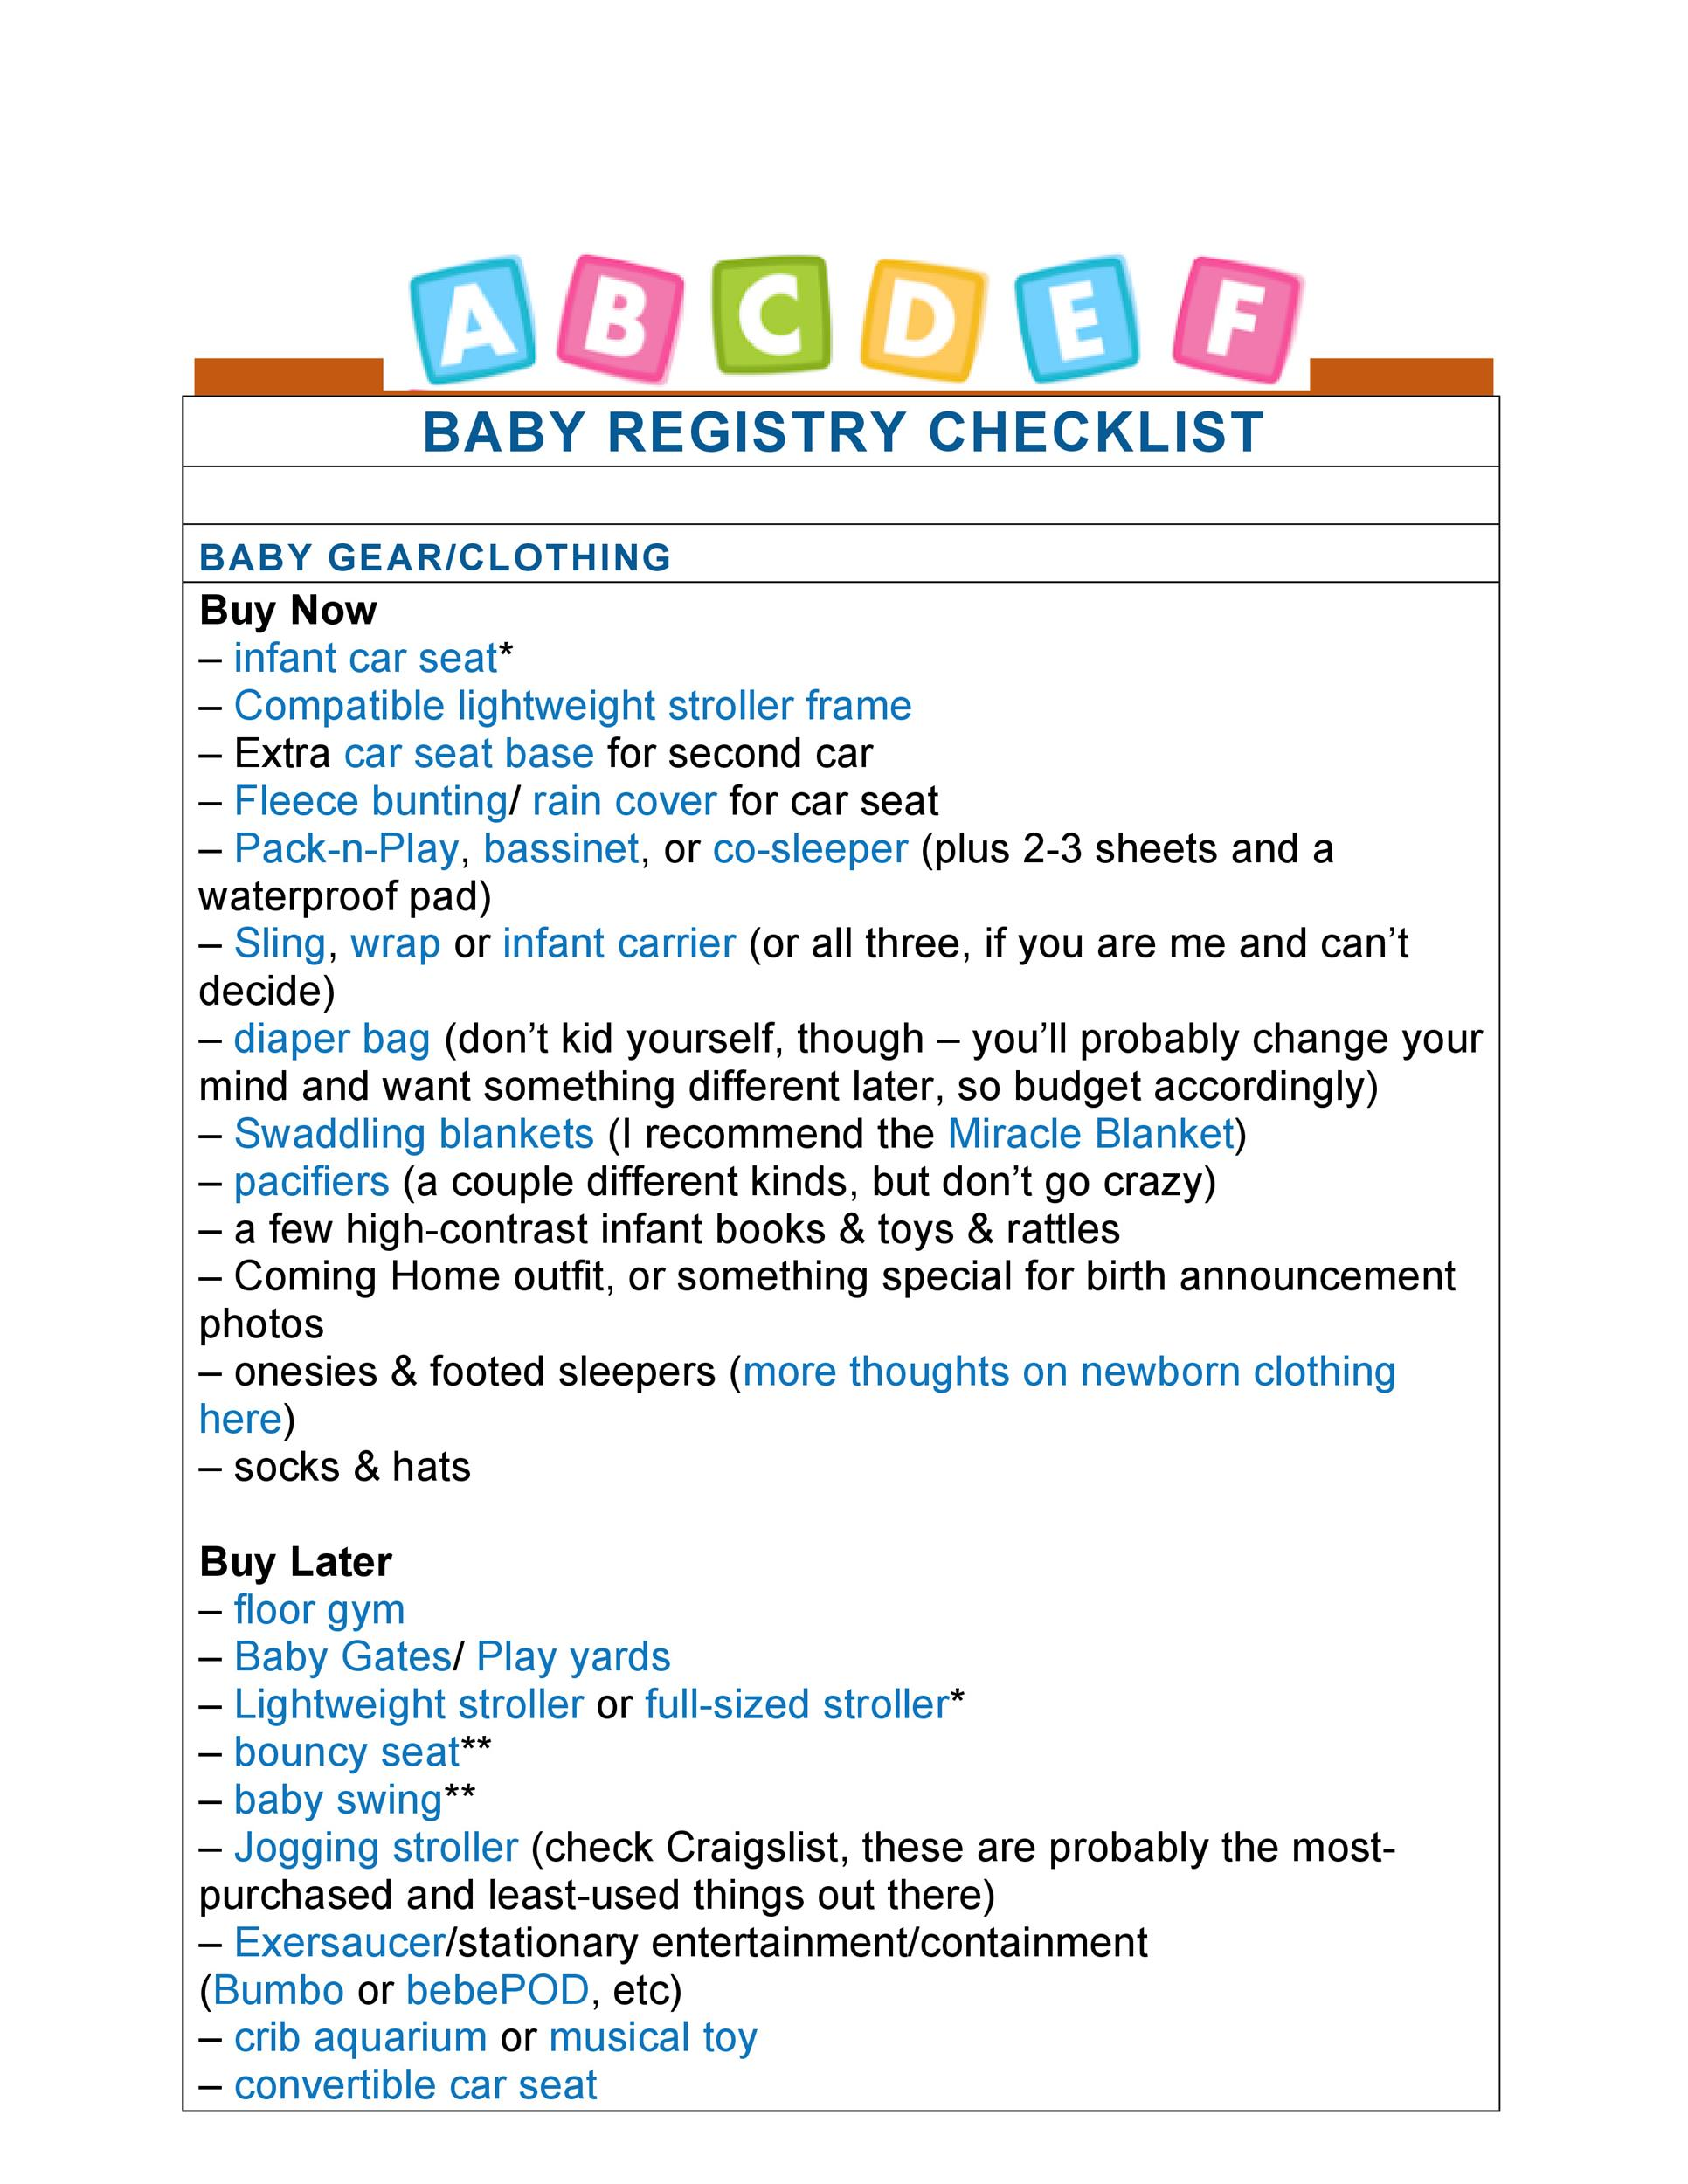 30+ Baby Registry Checklists (Newborn Baby Checklists) - Template Lab